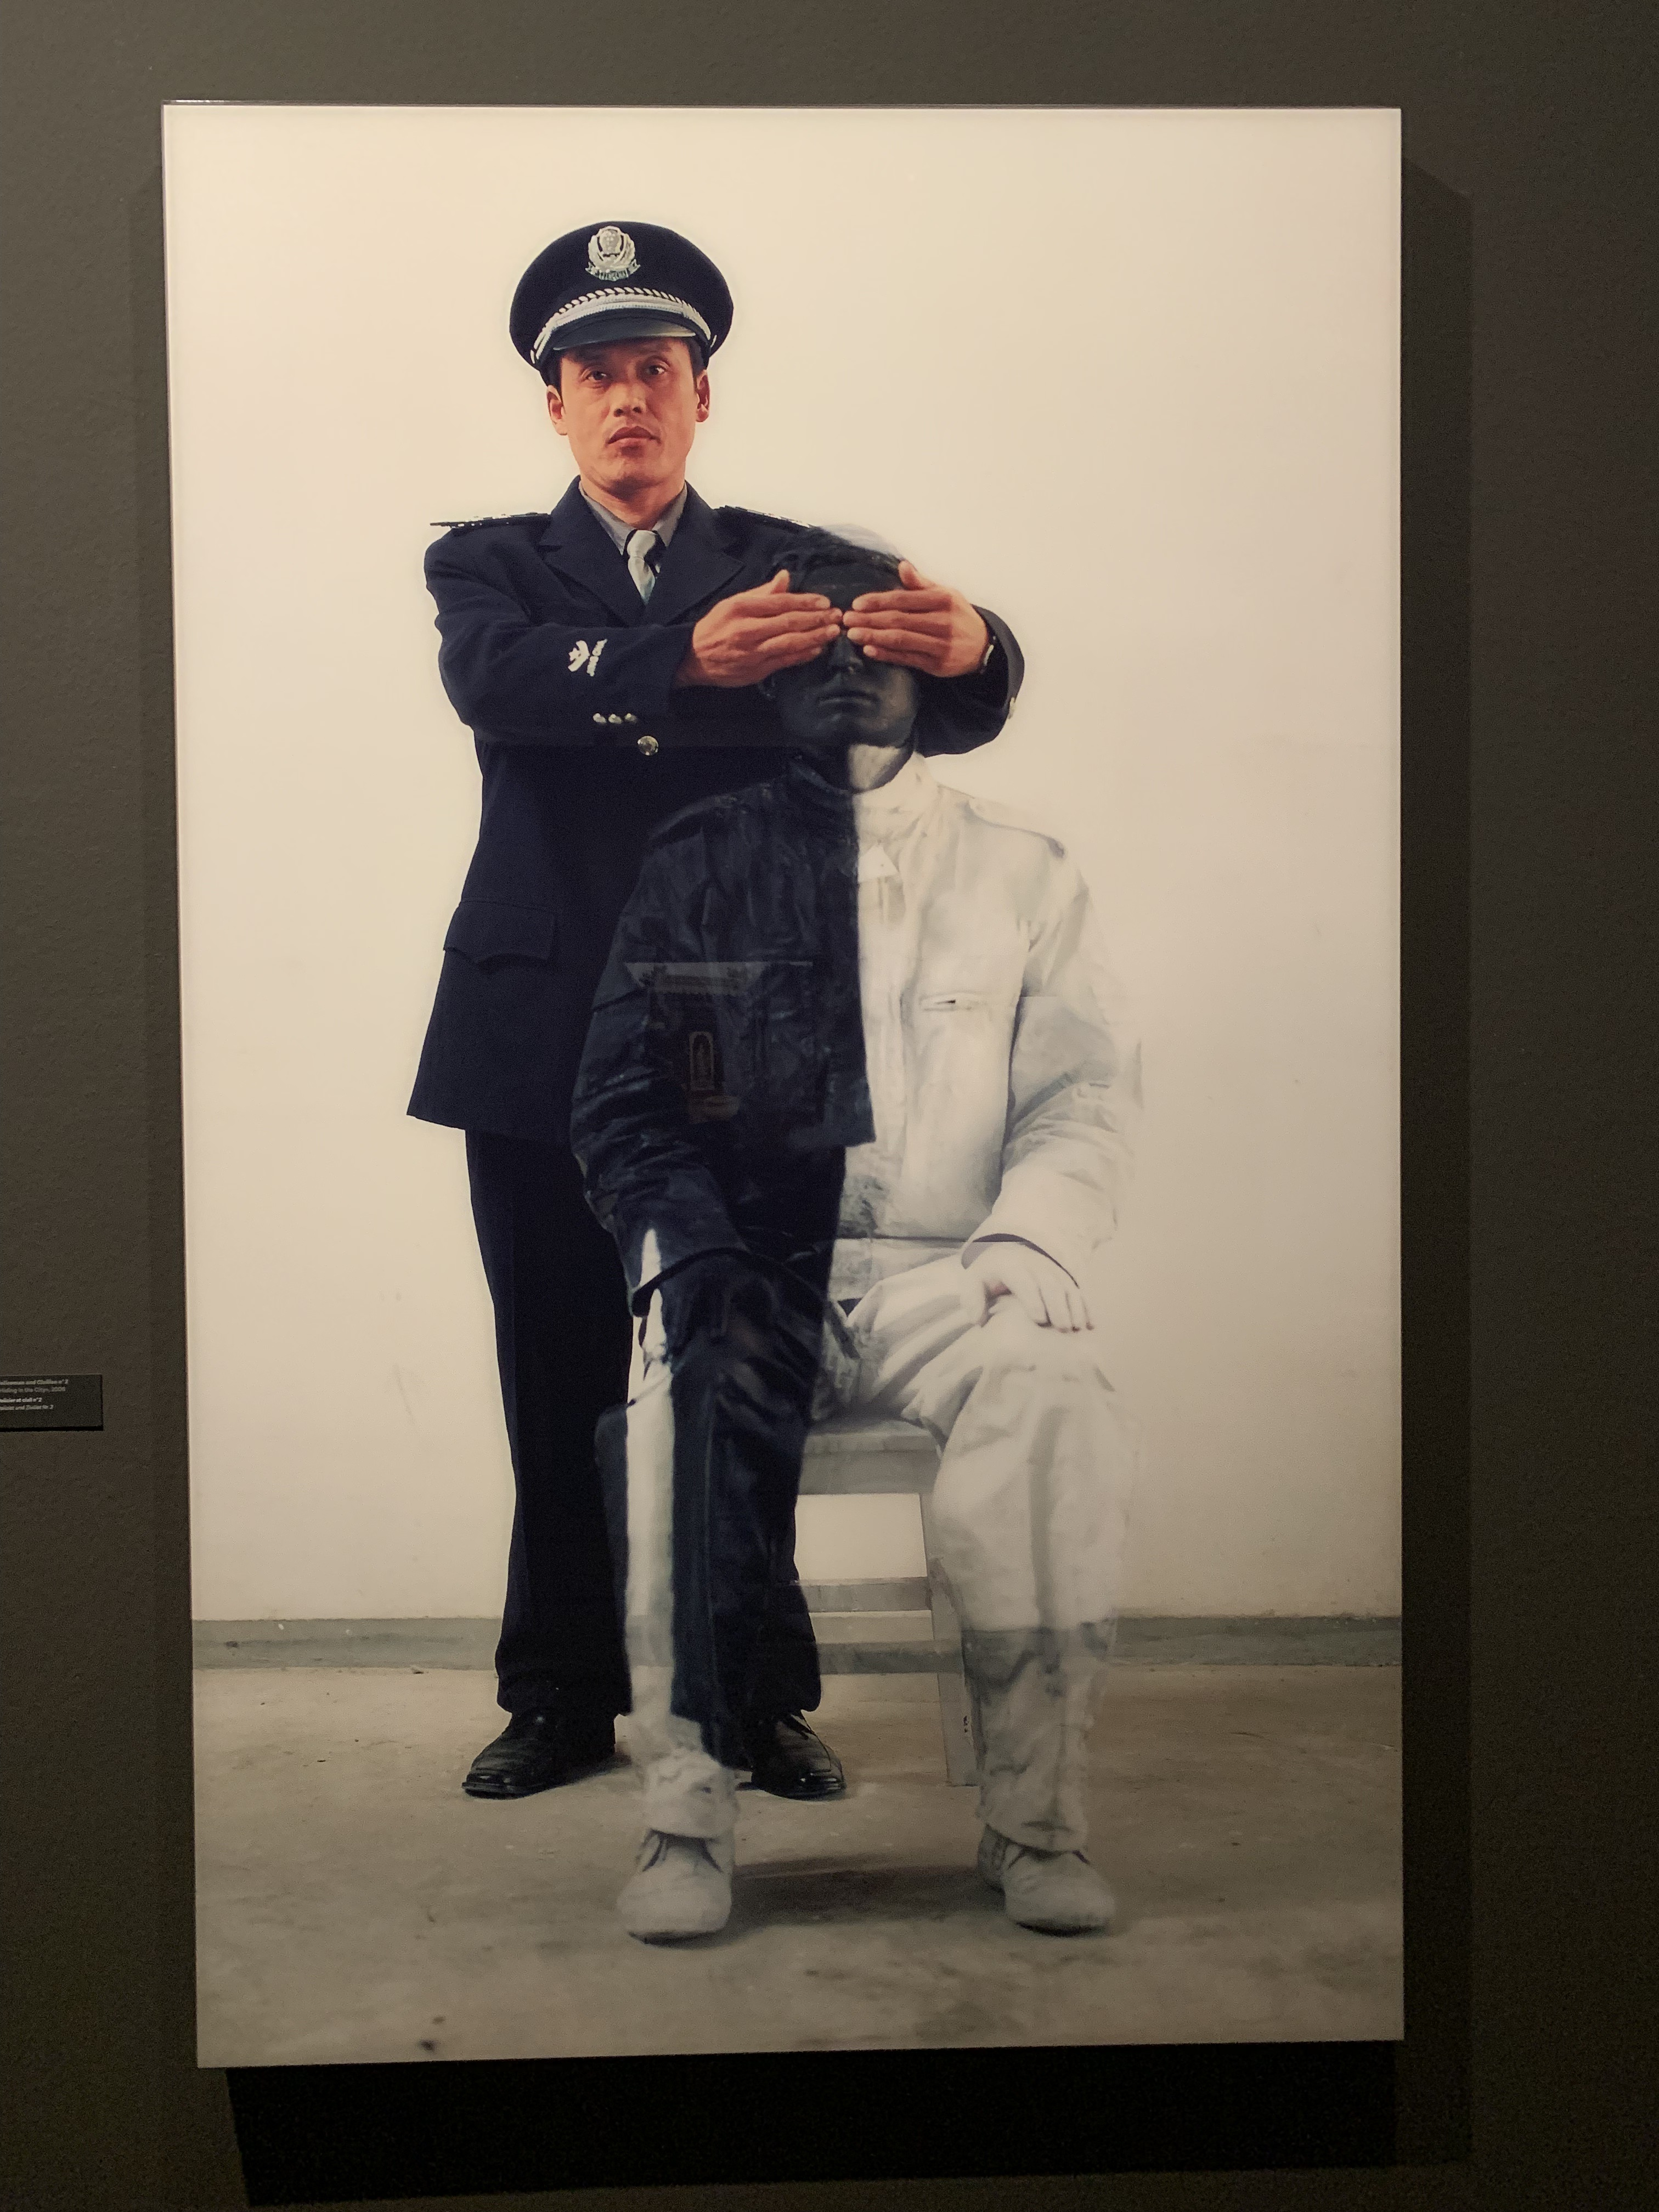 A police officer masking Liu Bolin's eyes